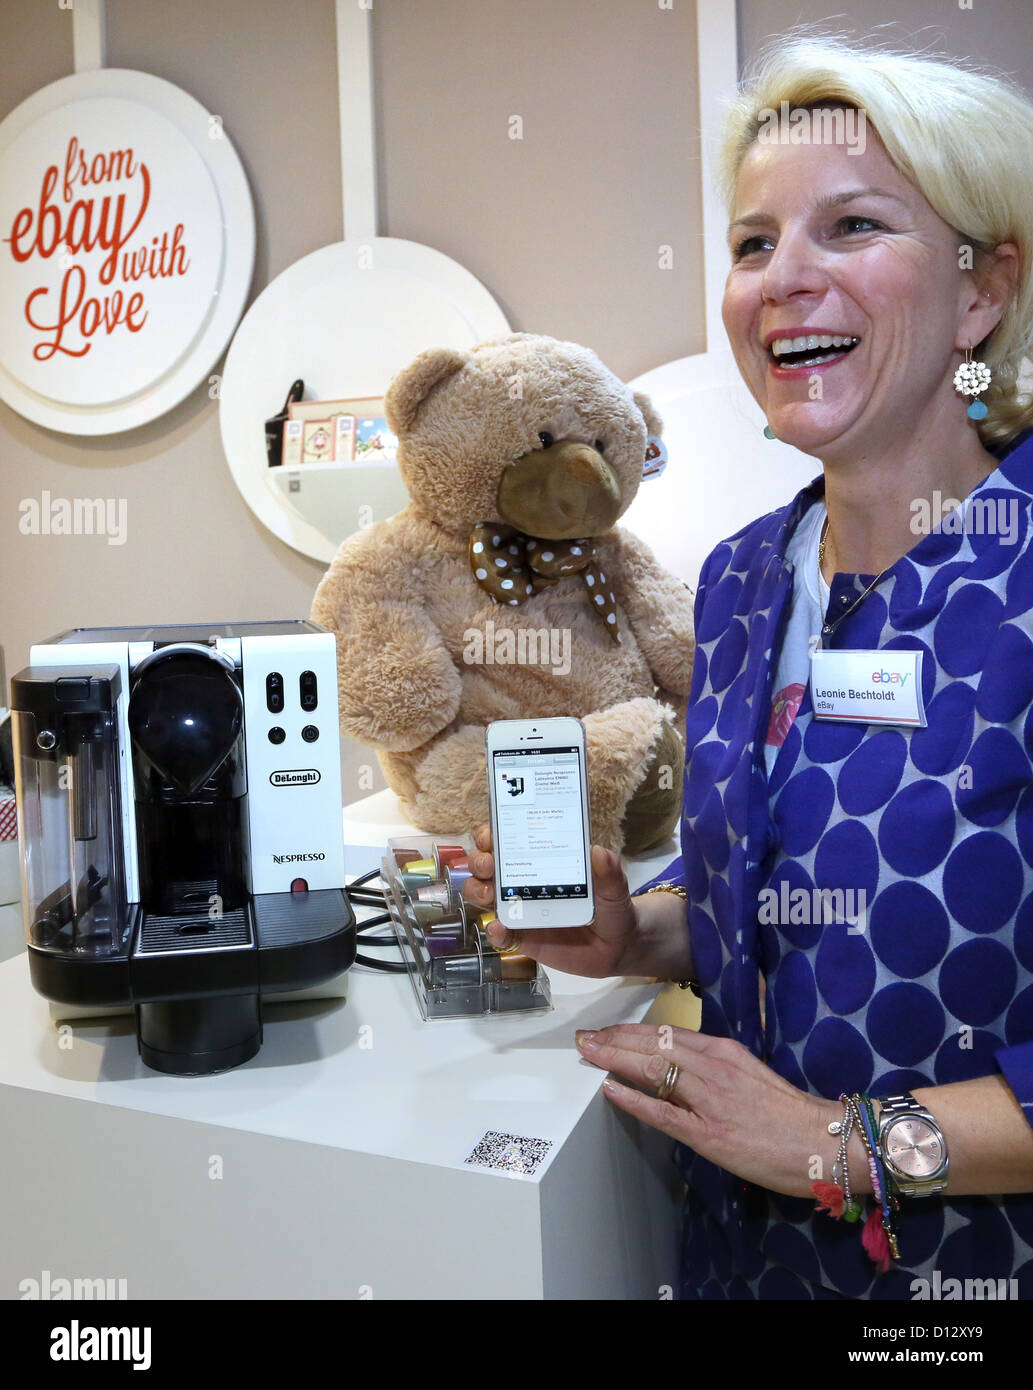 Leonie Bechthold of ebay presents a scanned code for a coffee machine at the new ebay Purchasing Shop (ebay-Kaufraum) - Stock Image